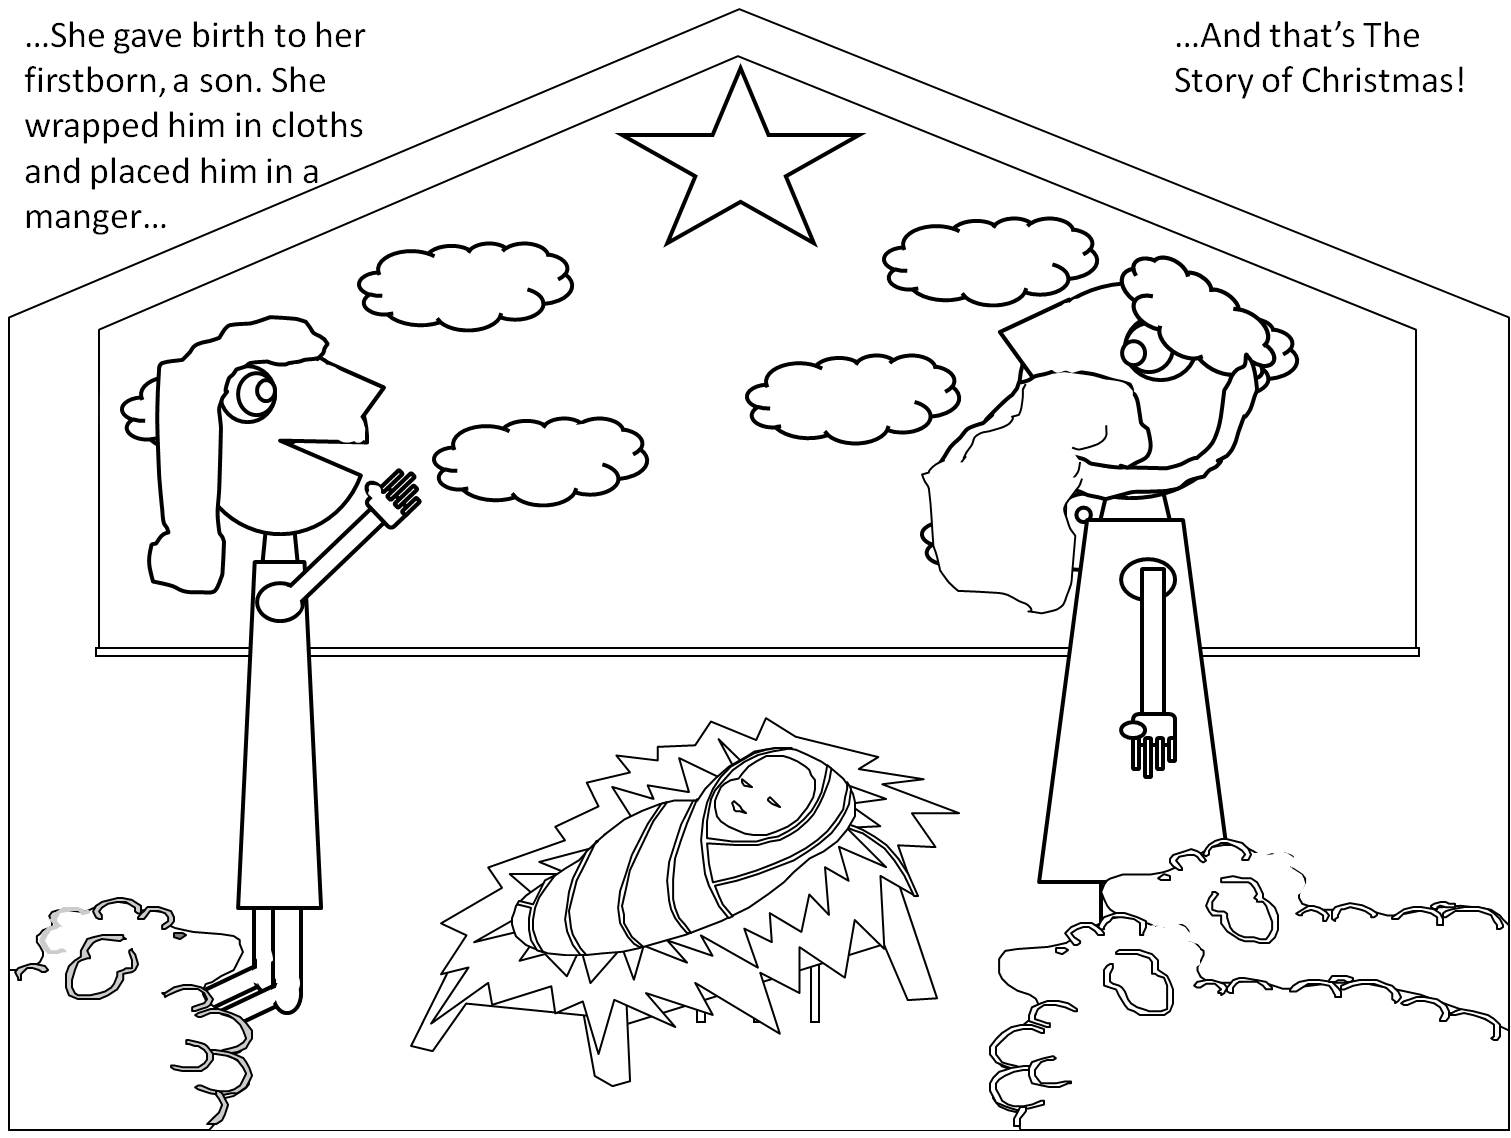 a christmas story coloring pages - photo#22